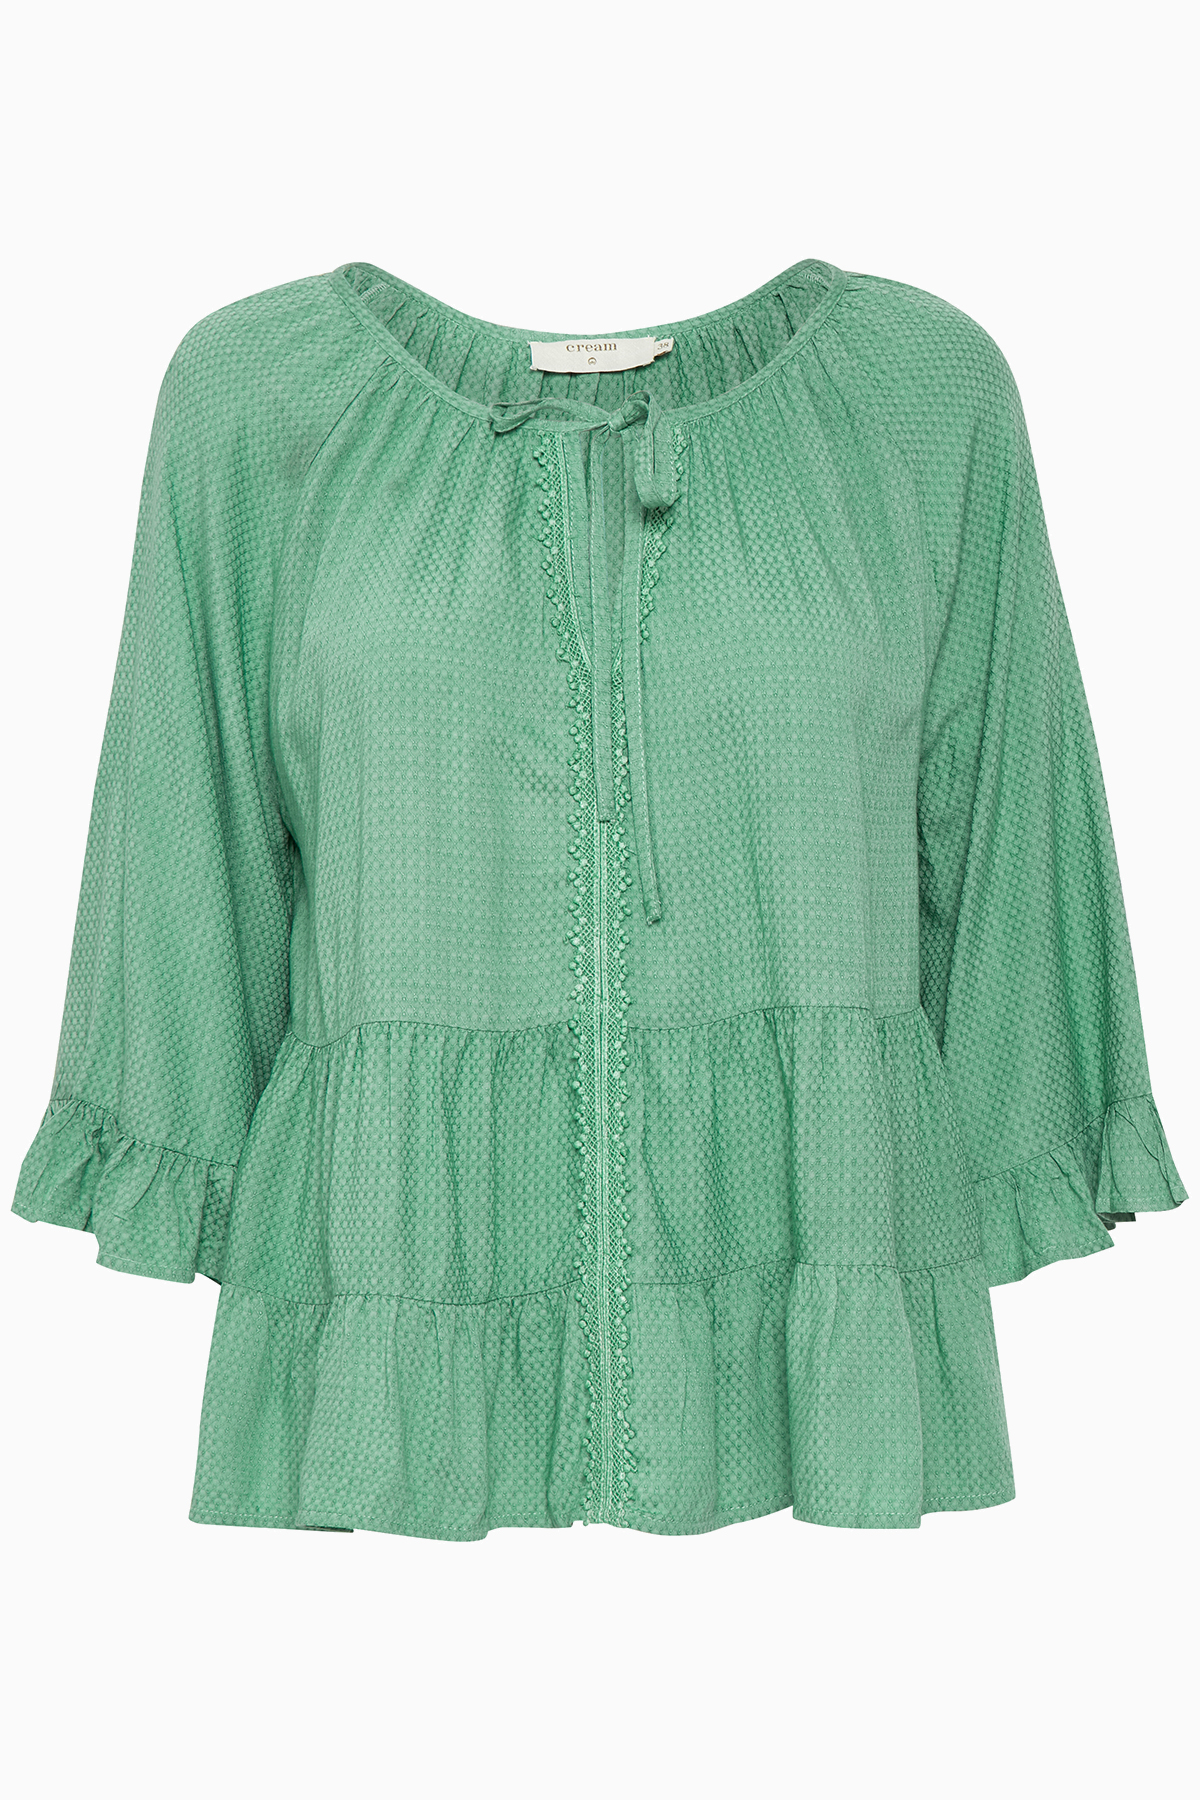 Cream Dame Blouse - Misty groen